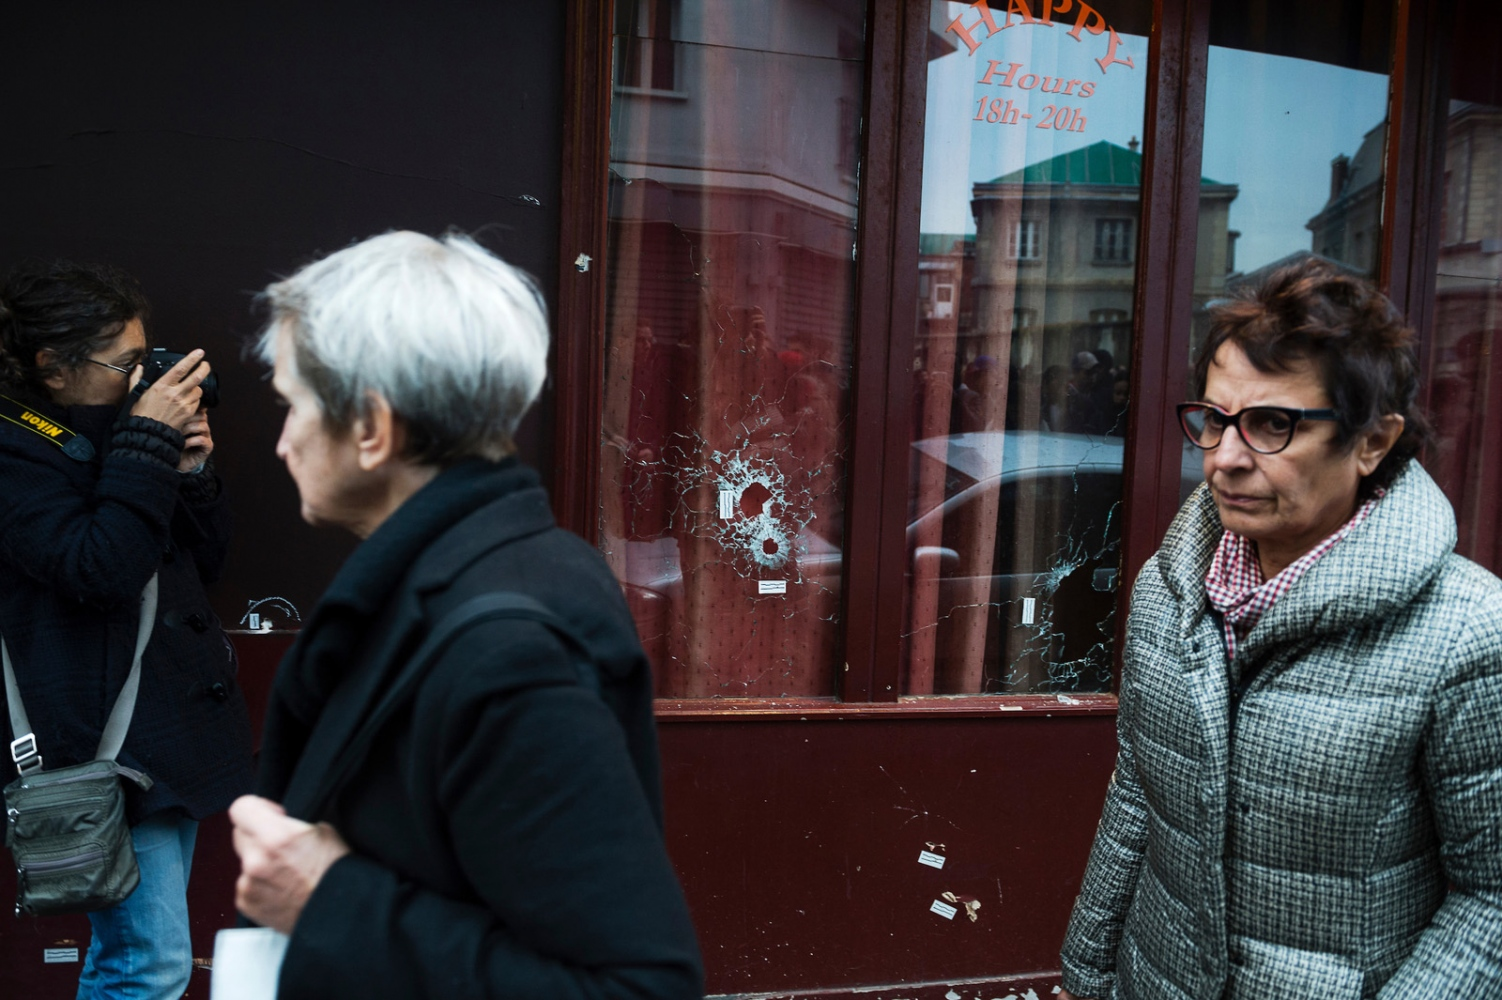 Bullet holes in the windows of the restaurant Le Carillon, where five people where shot to death in a terrorist attack. Several coordinated terrorist attacks in Paris, France, left over a hundred people dead.